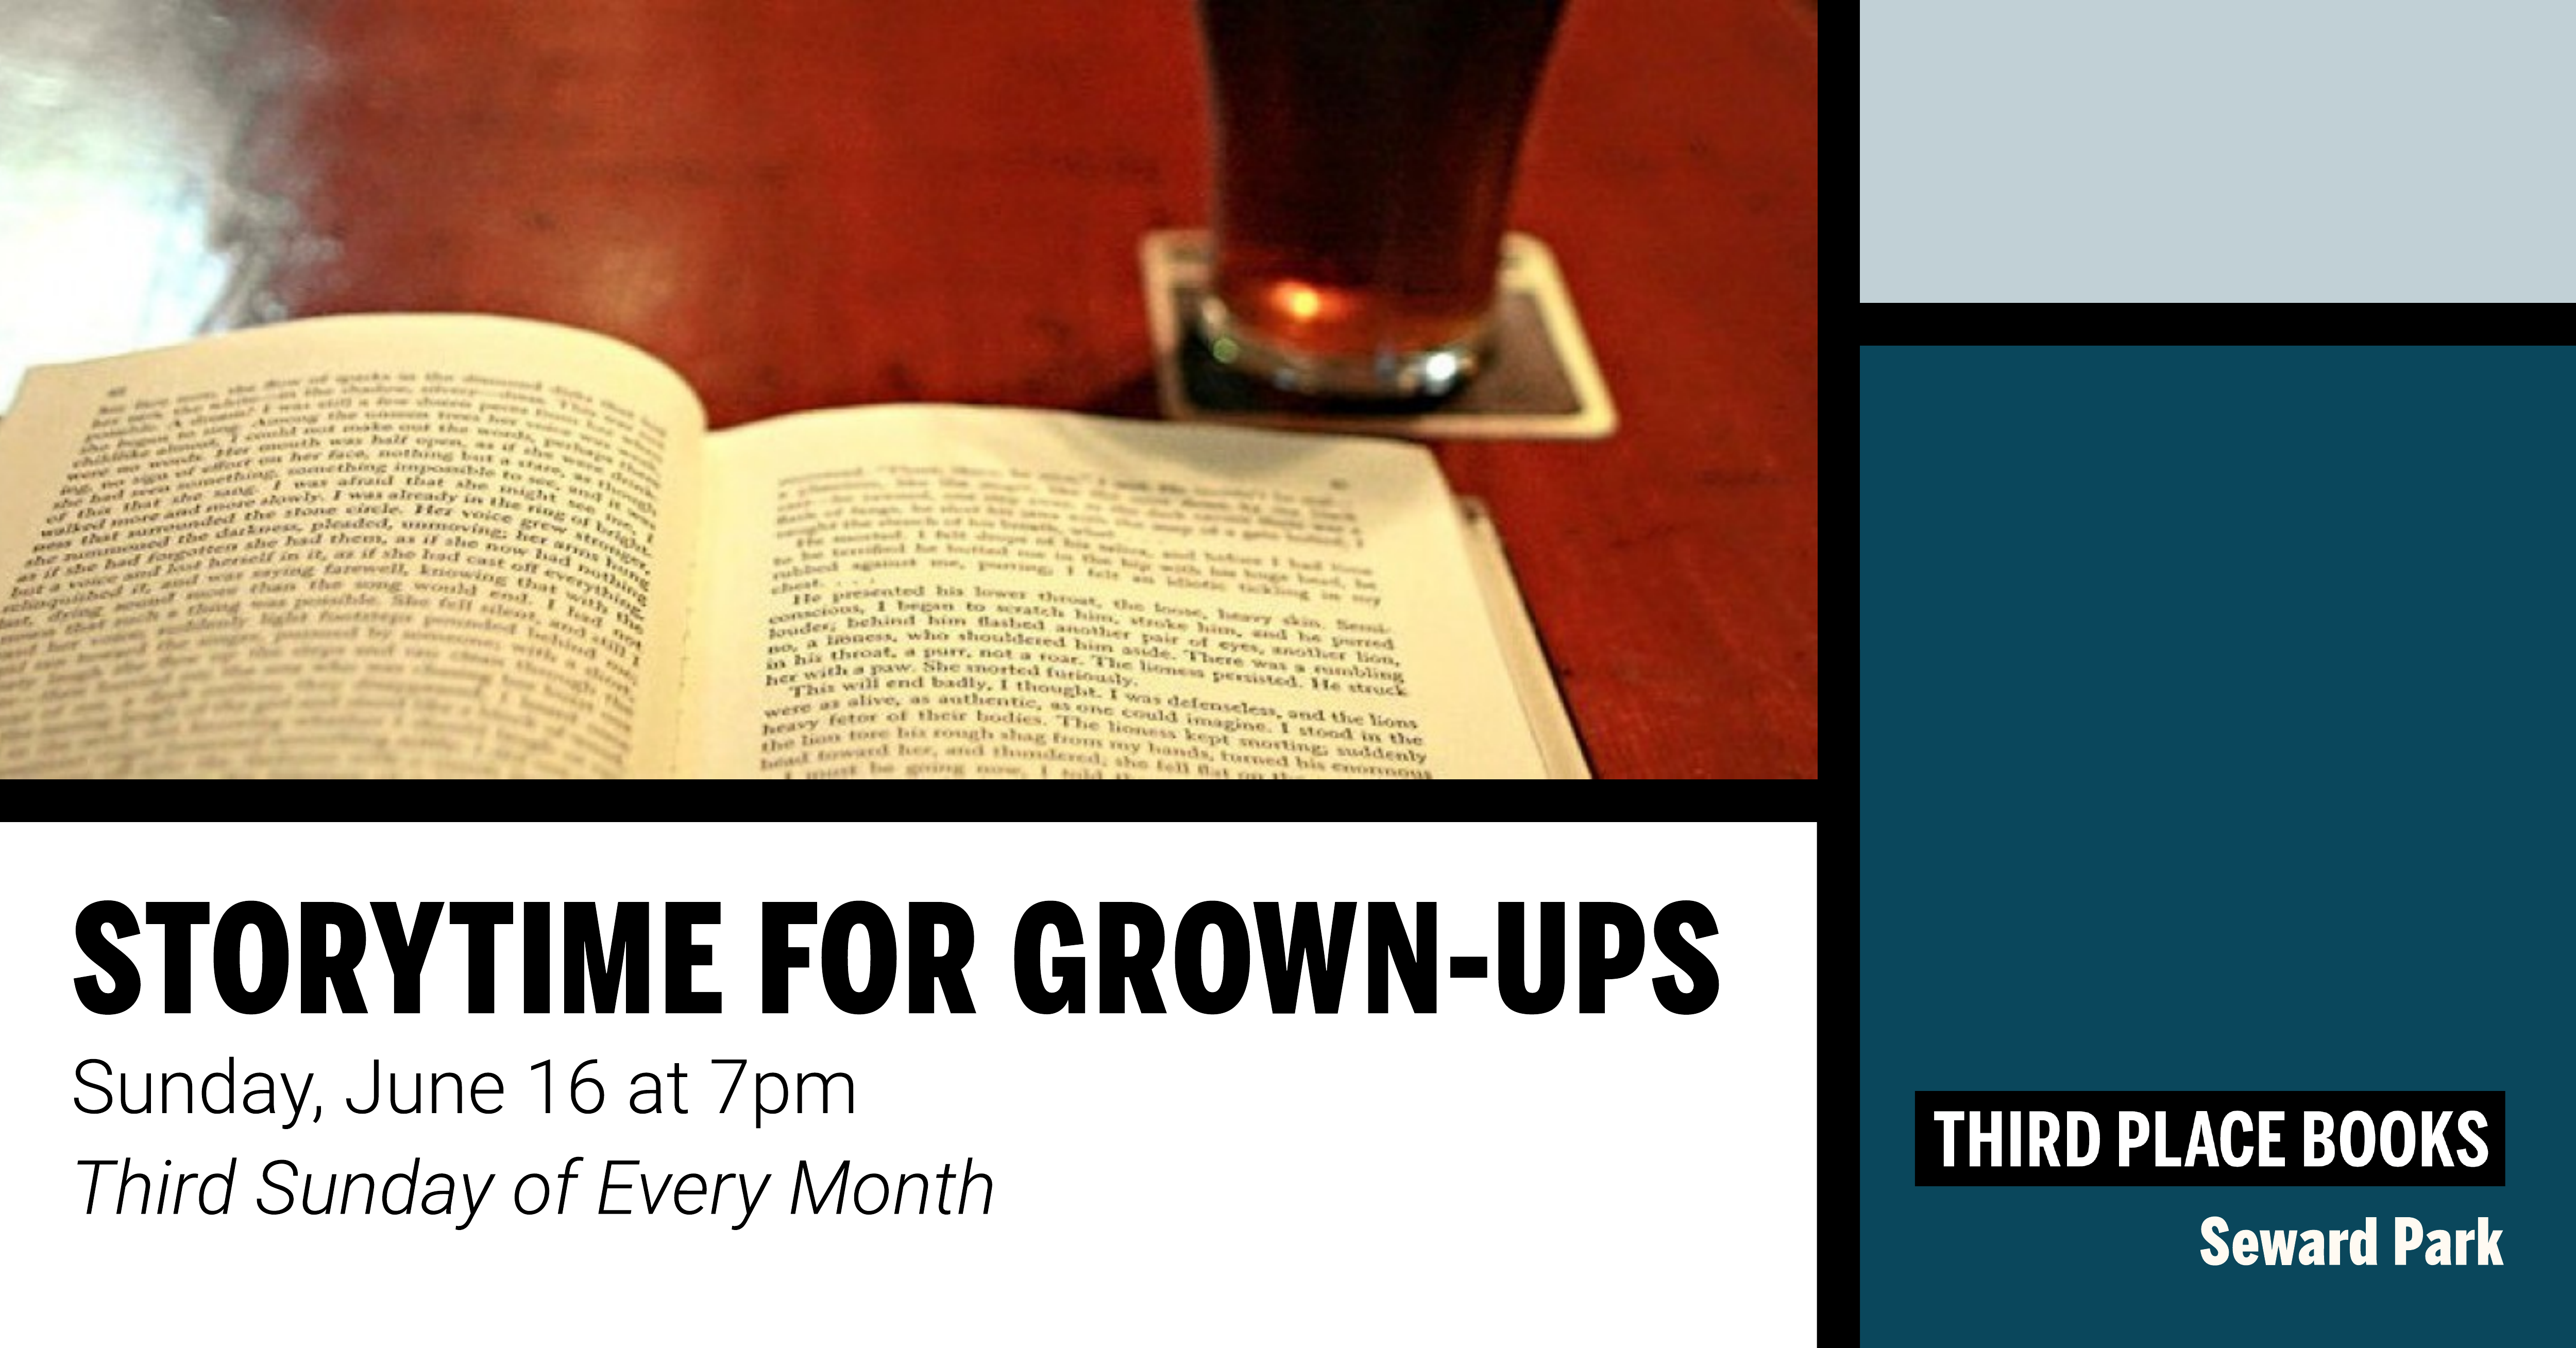 Story Time for Grown Ups on Sunday, June 16 at 7pm